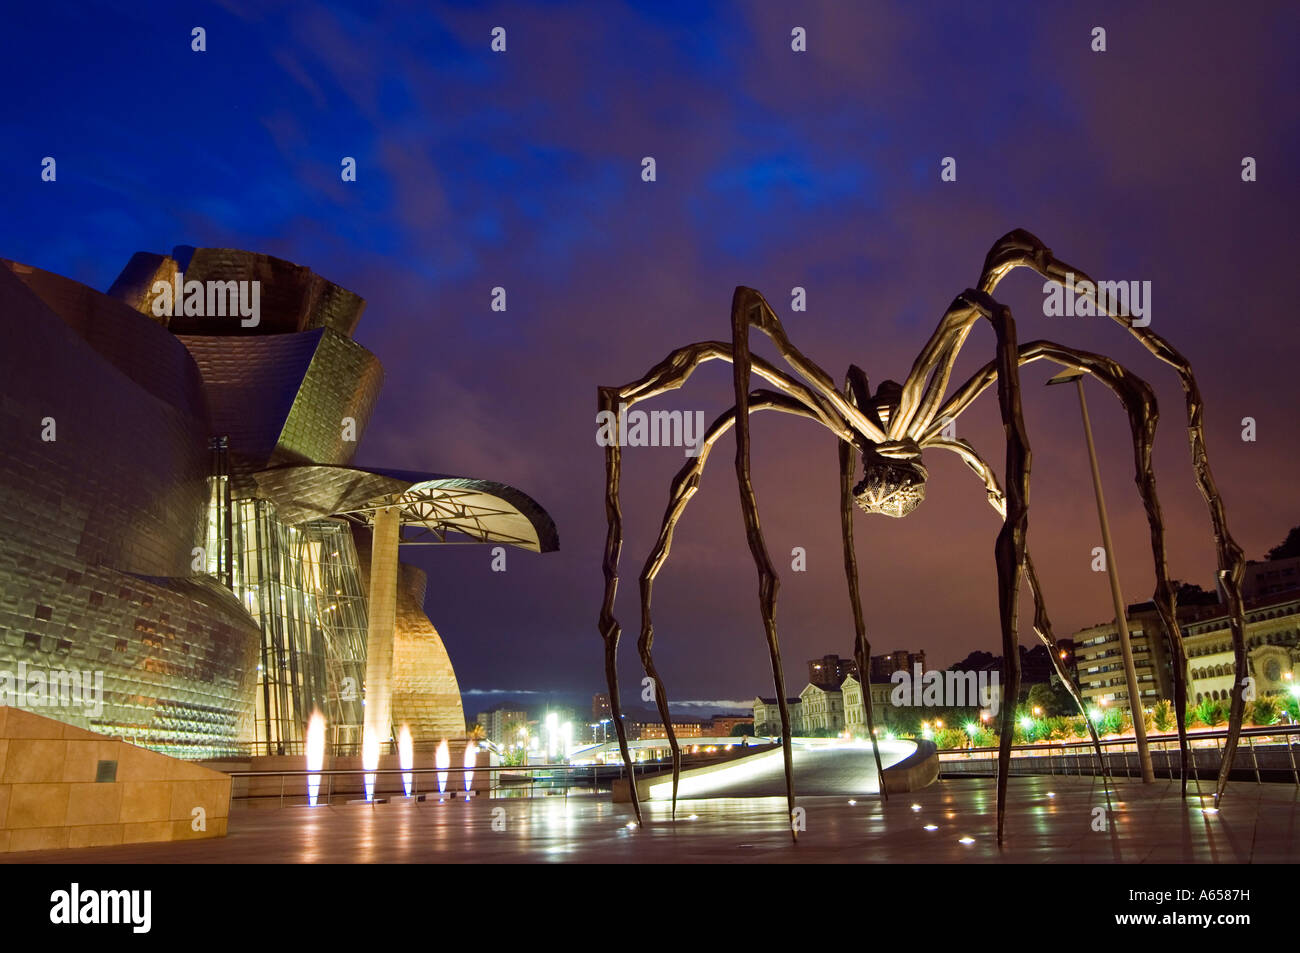 Spain Basque Country Bilbao Guggenheim Modern Art Museum designed by Frank Gehry Giant Spider Sculpture by Louise - Stock Image